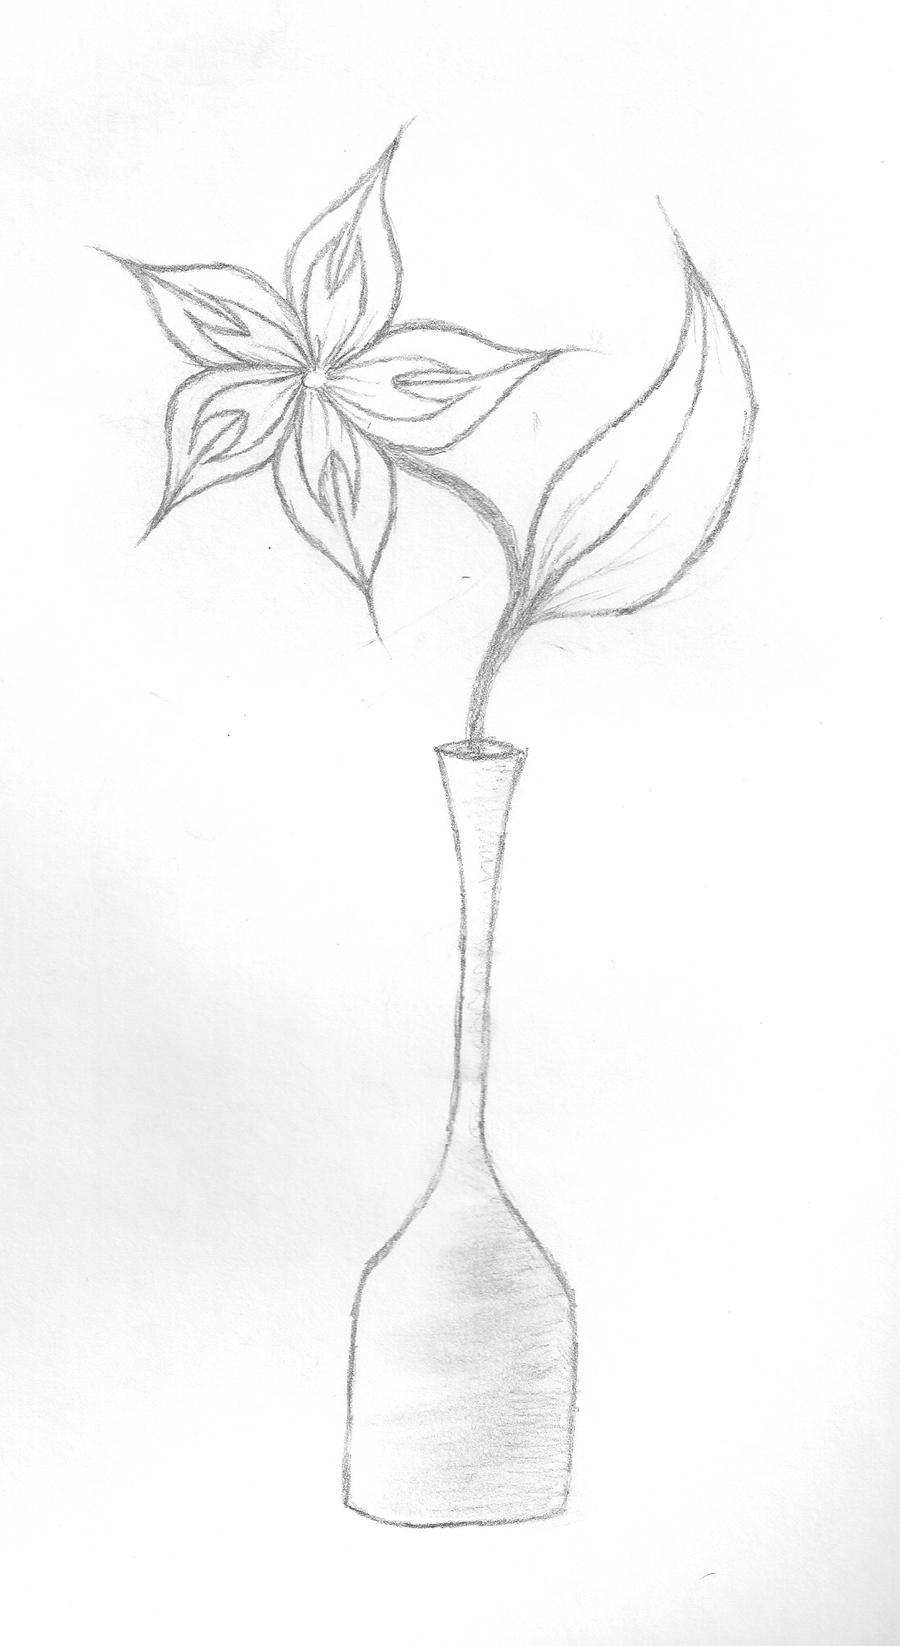 Flower in a vase by meggypie643 on deviantart flower in a vase by meggypie643 flower in a vase by meggypie643 reviewsmspy